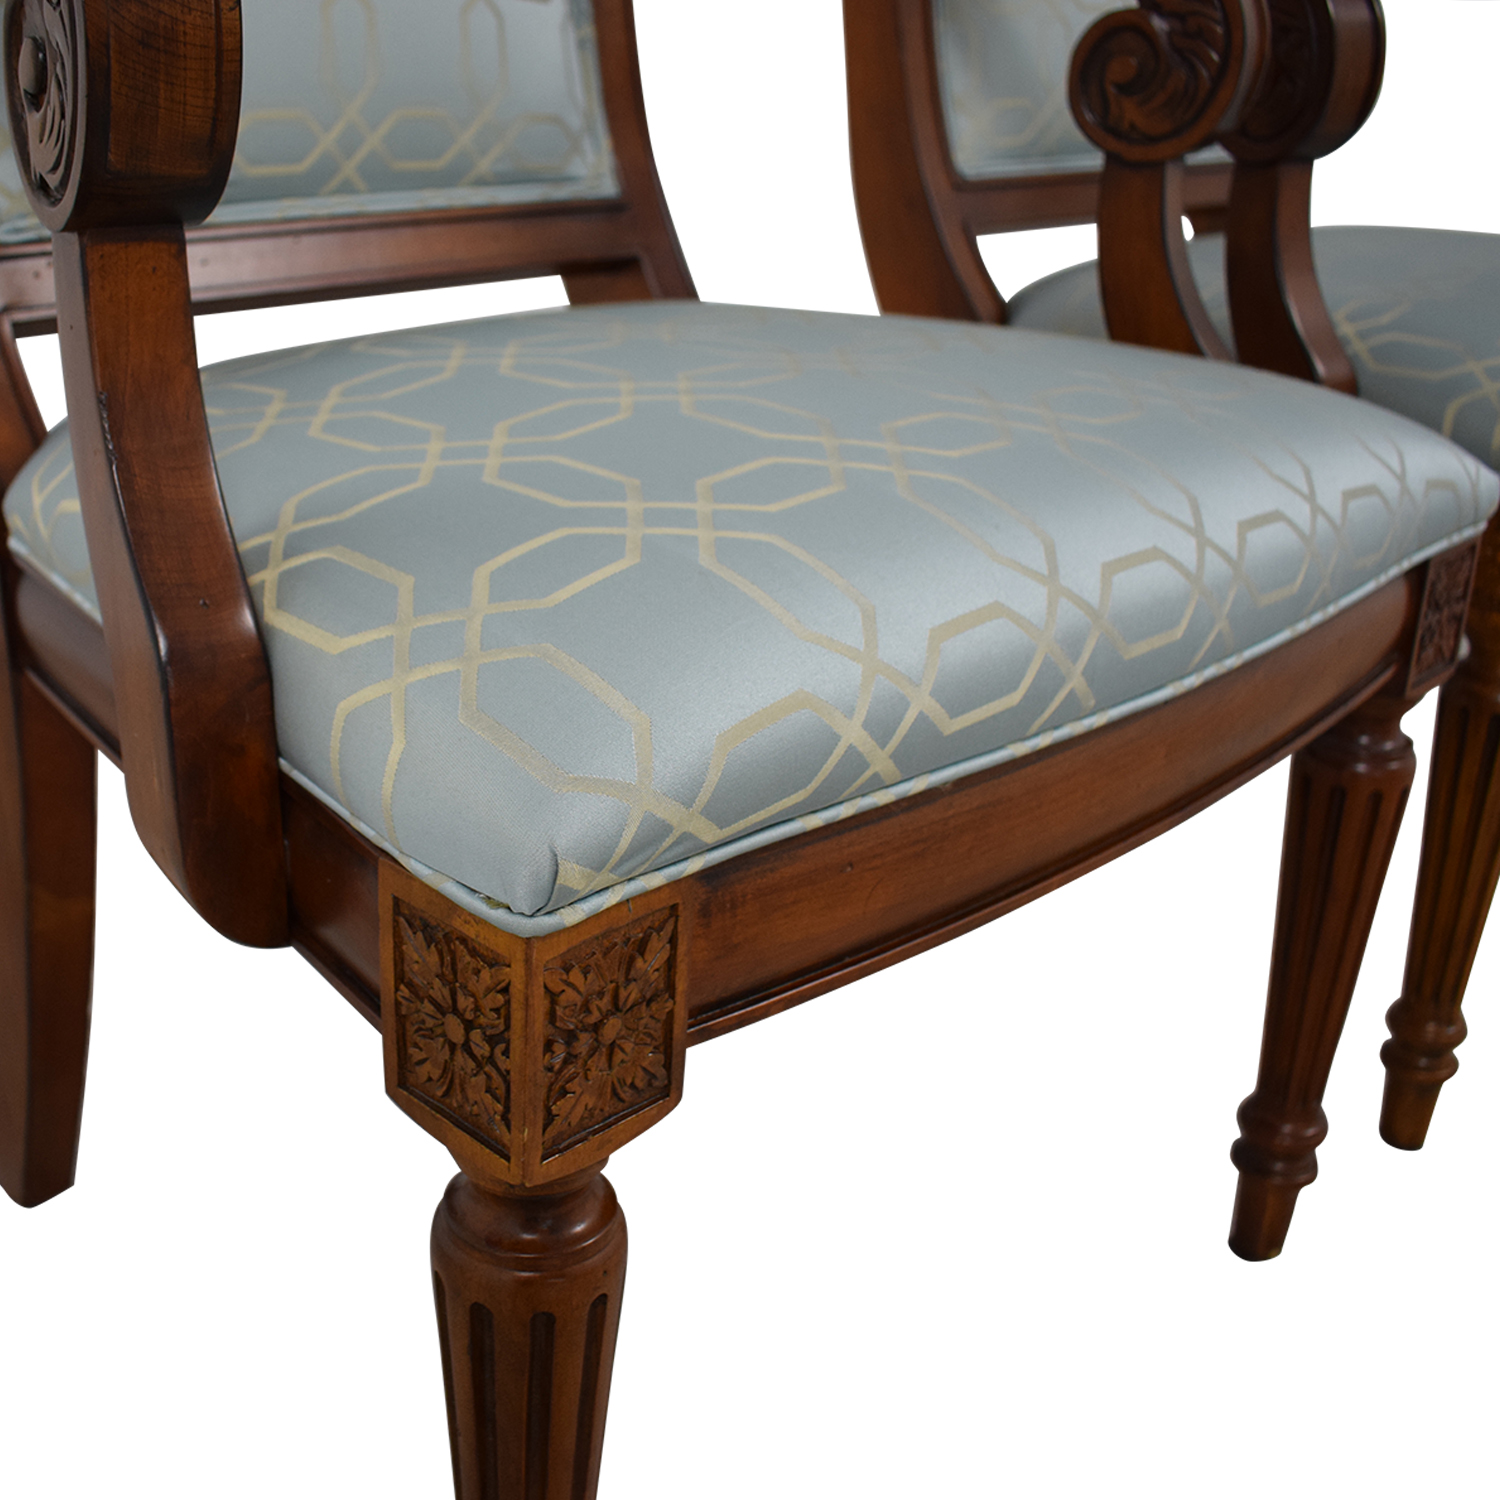 Ethan Allen Adison Armchairs / Chairs